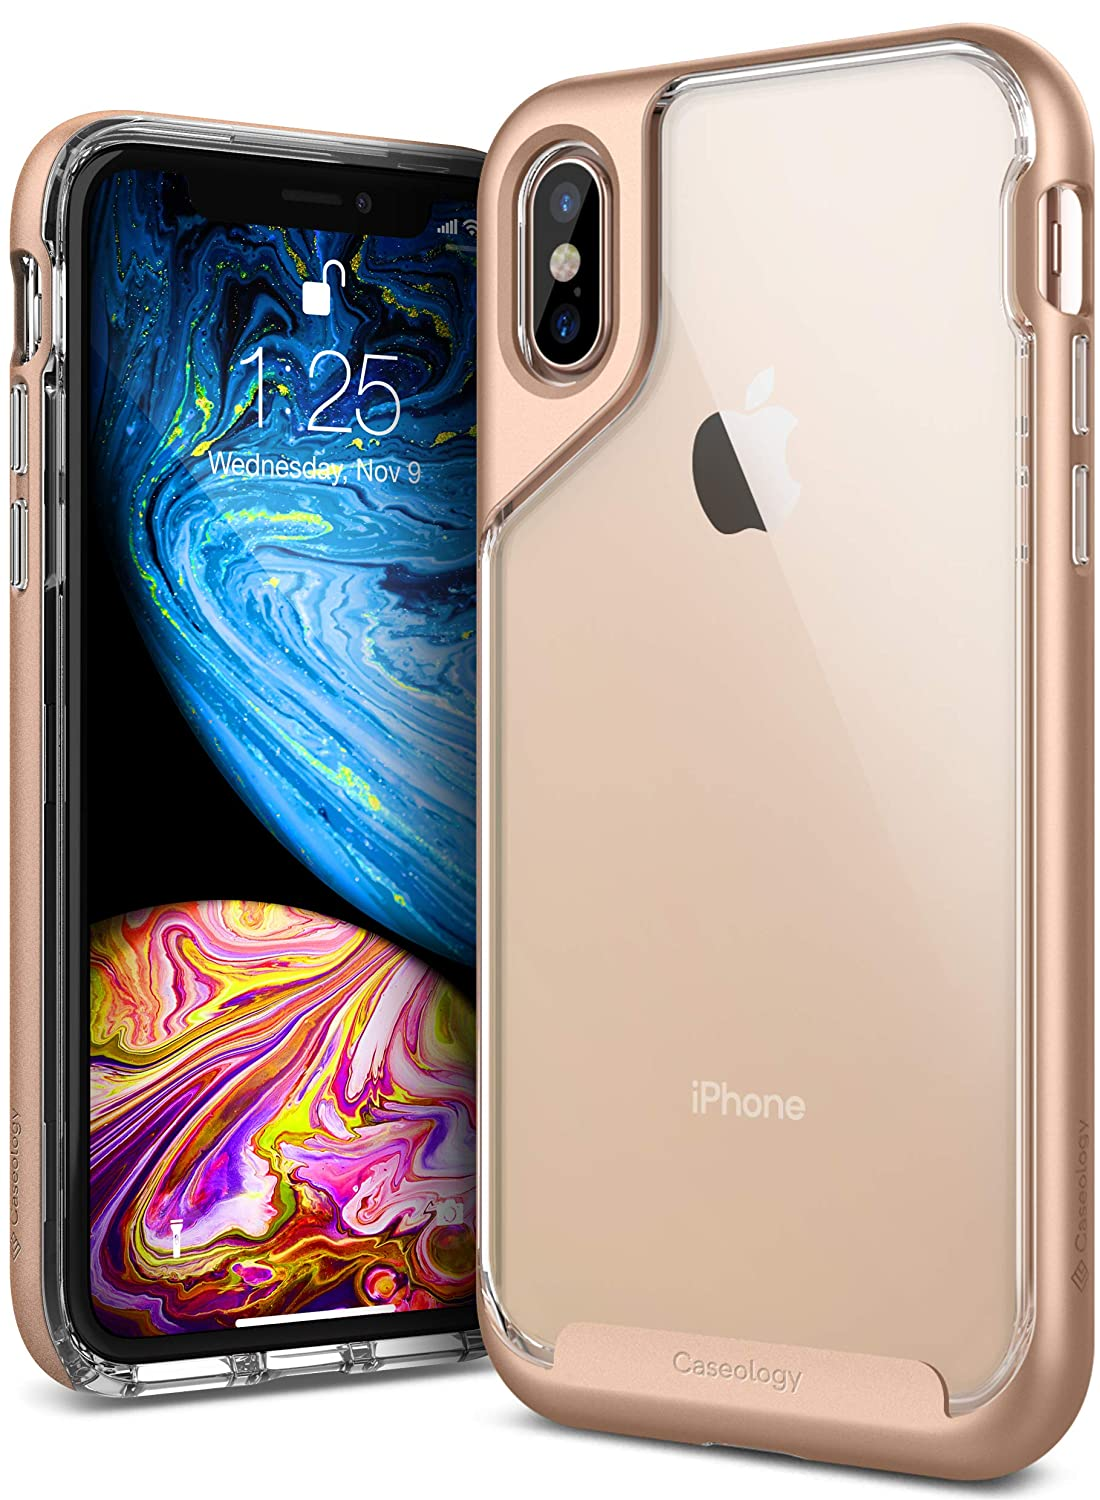 Caseology for iPhone XS Case [Skyfall Series] - Clear Slim Fit Corner Cushion Enhanced Drop Protection Transparent Design Case for iPhone XS 5.8 (2018) & iPhone X (2017) - Gold CO-IP8-SKY-CG